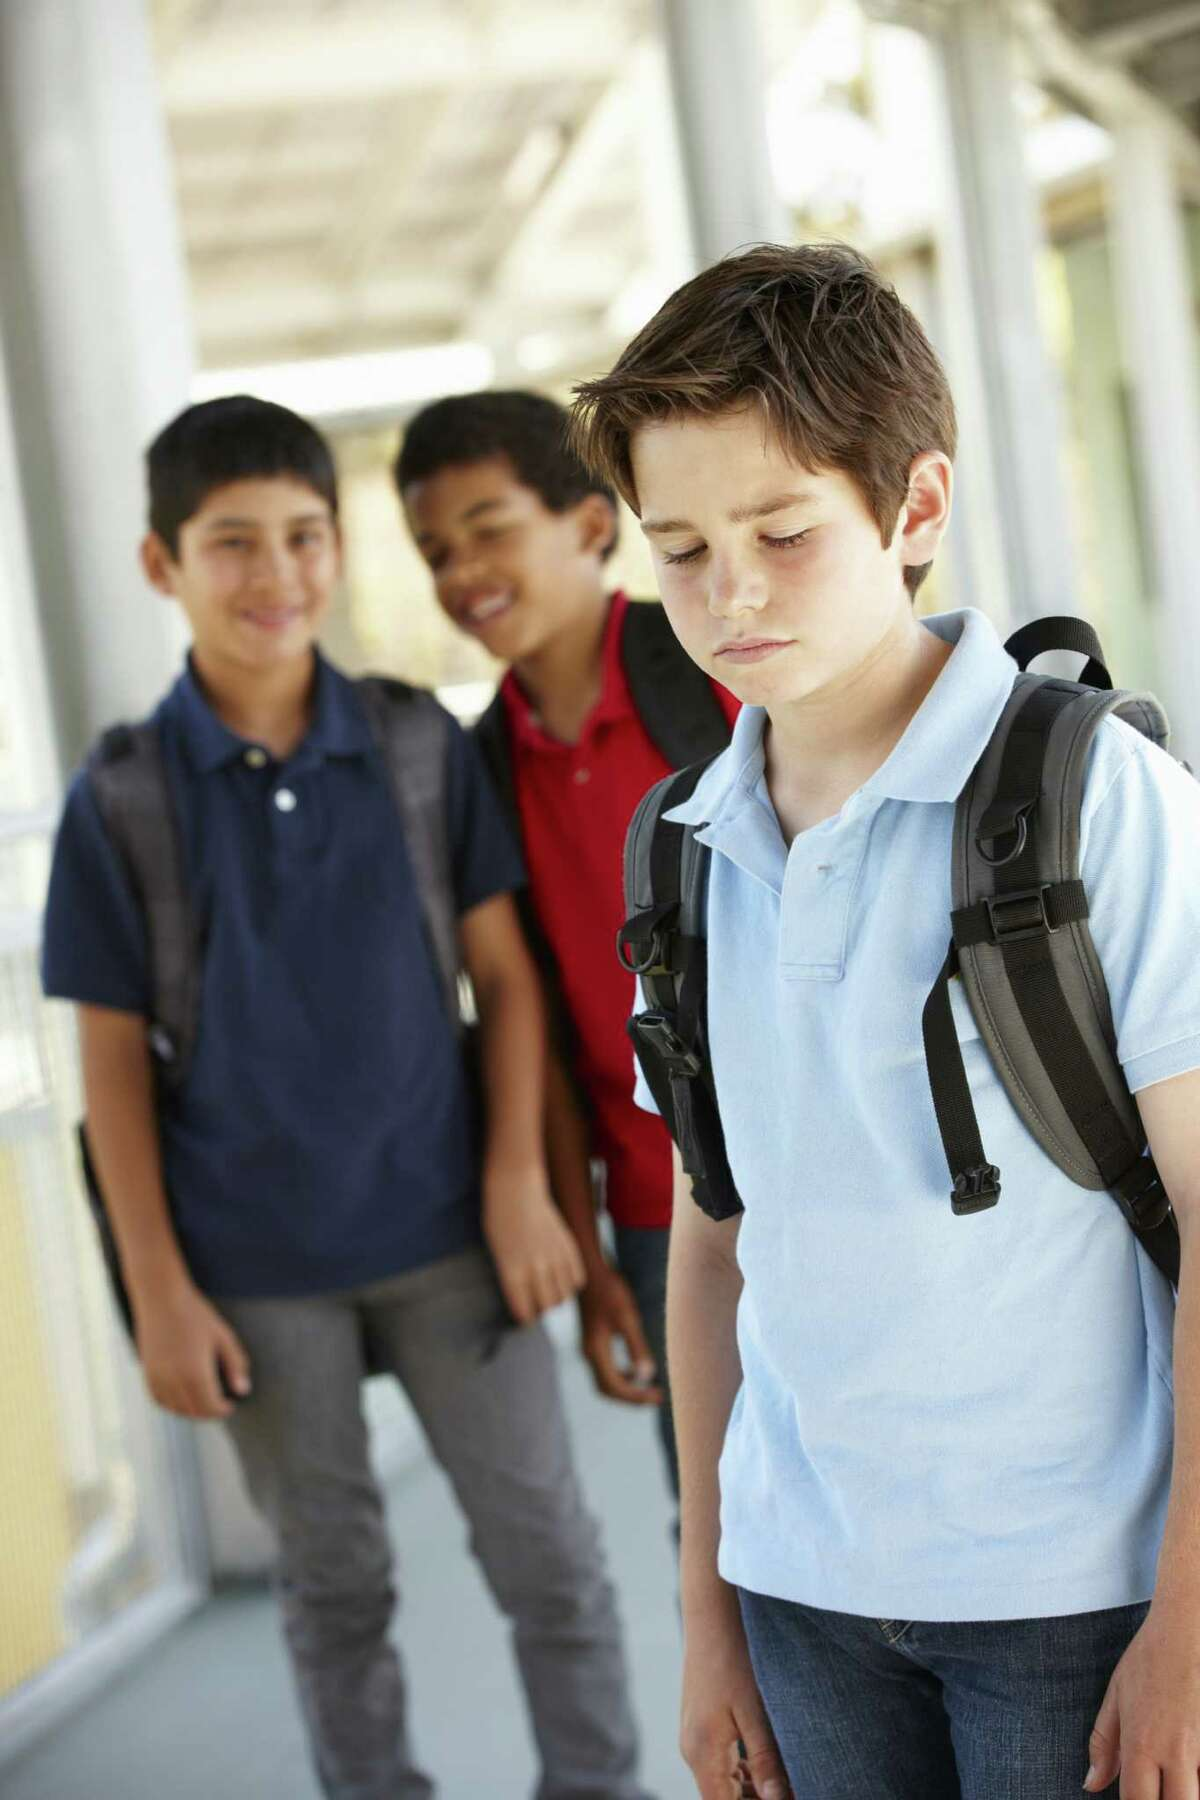 A 20-year study from Duke University examines the long-term effects of bullying.